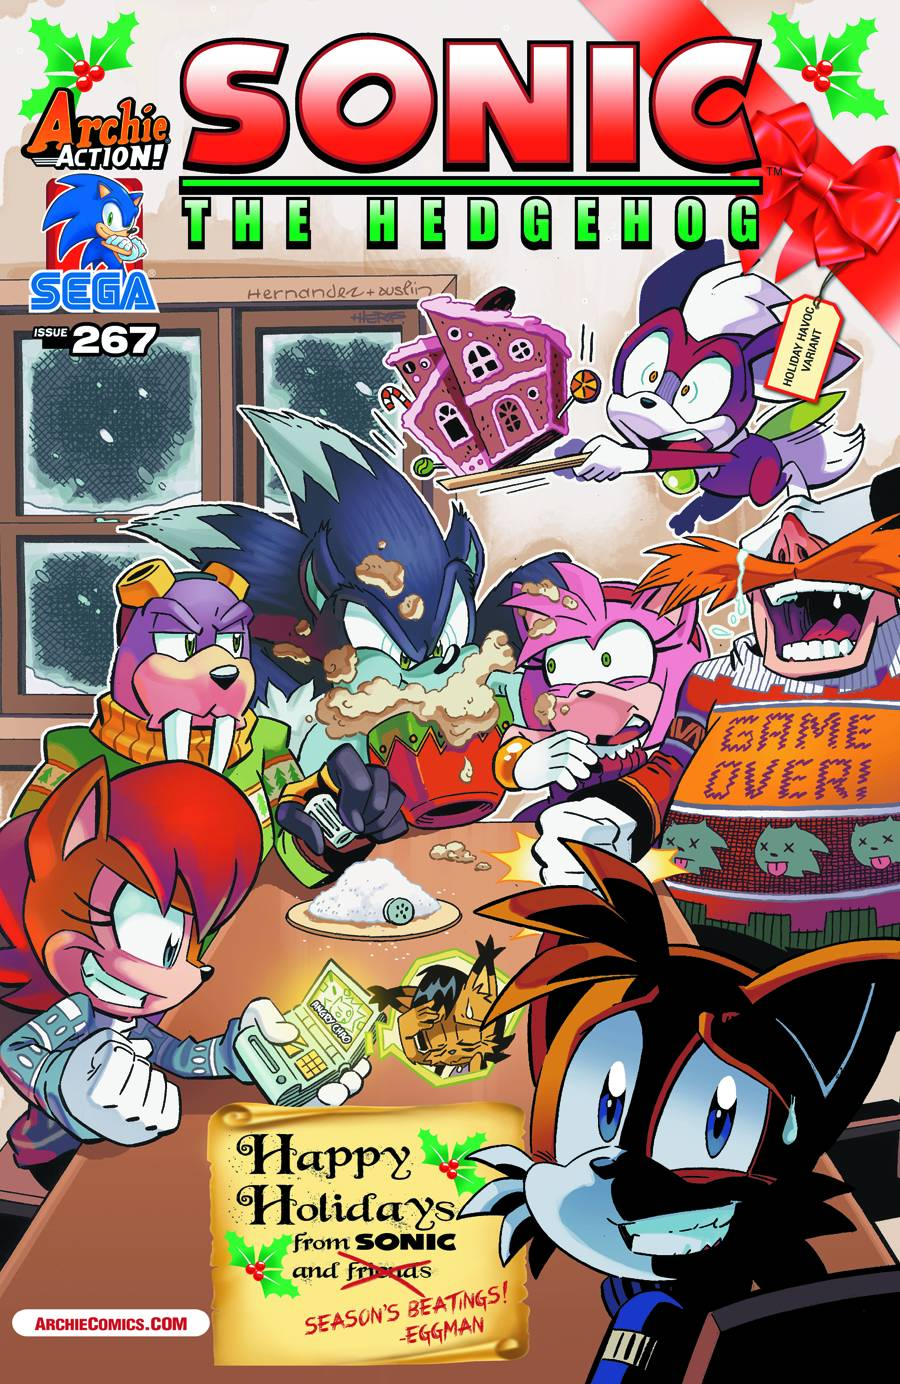 Image 833595 archie sonic comics know your meme sega e267 issue game 0 appy molidays from sonic and archiecomics thecheapjerseys Gallery